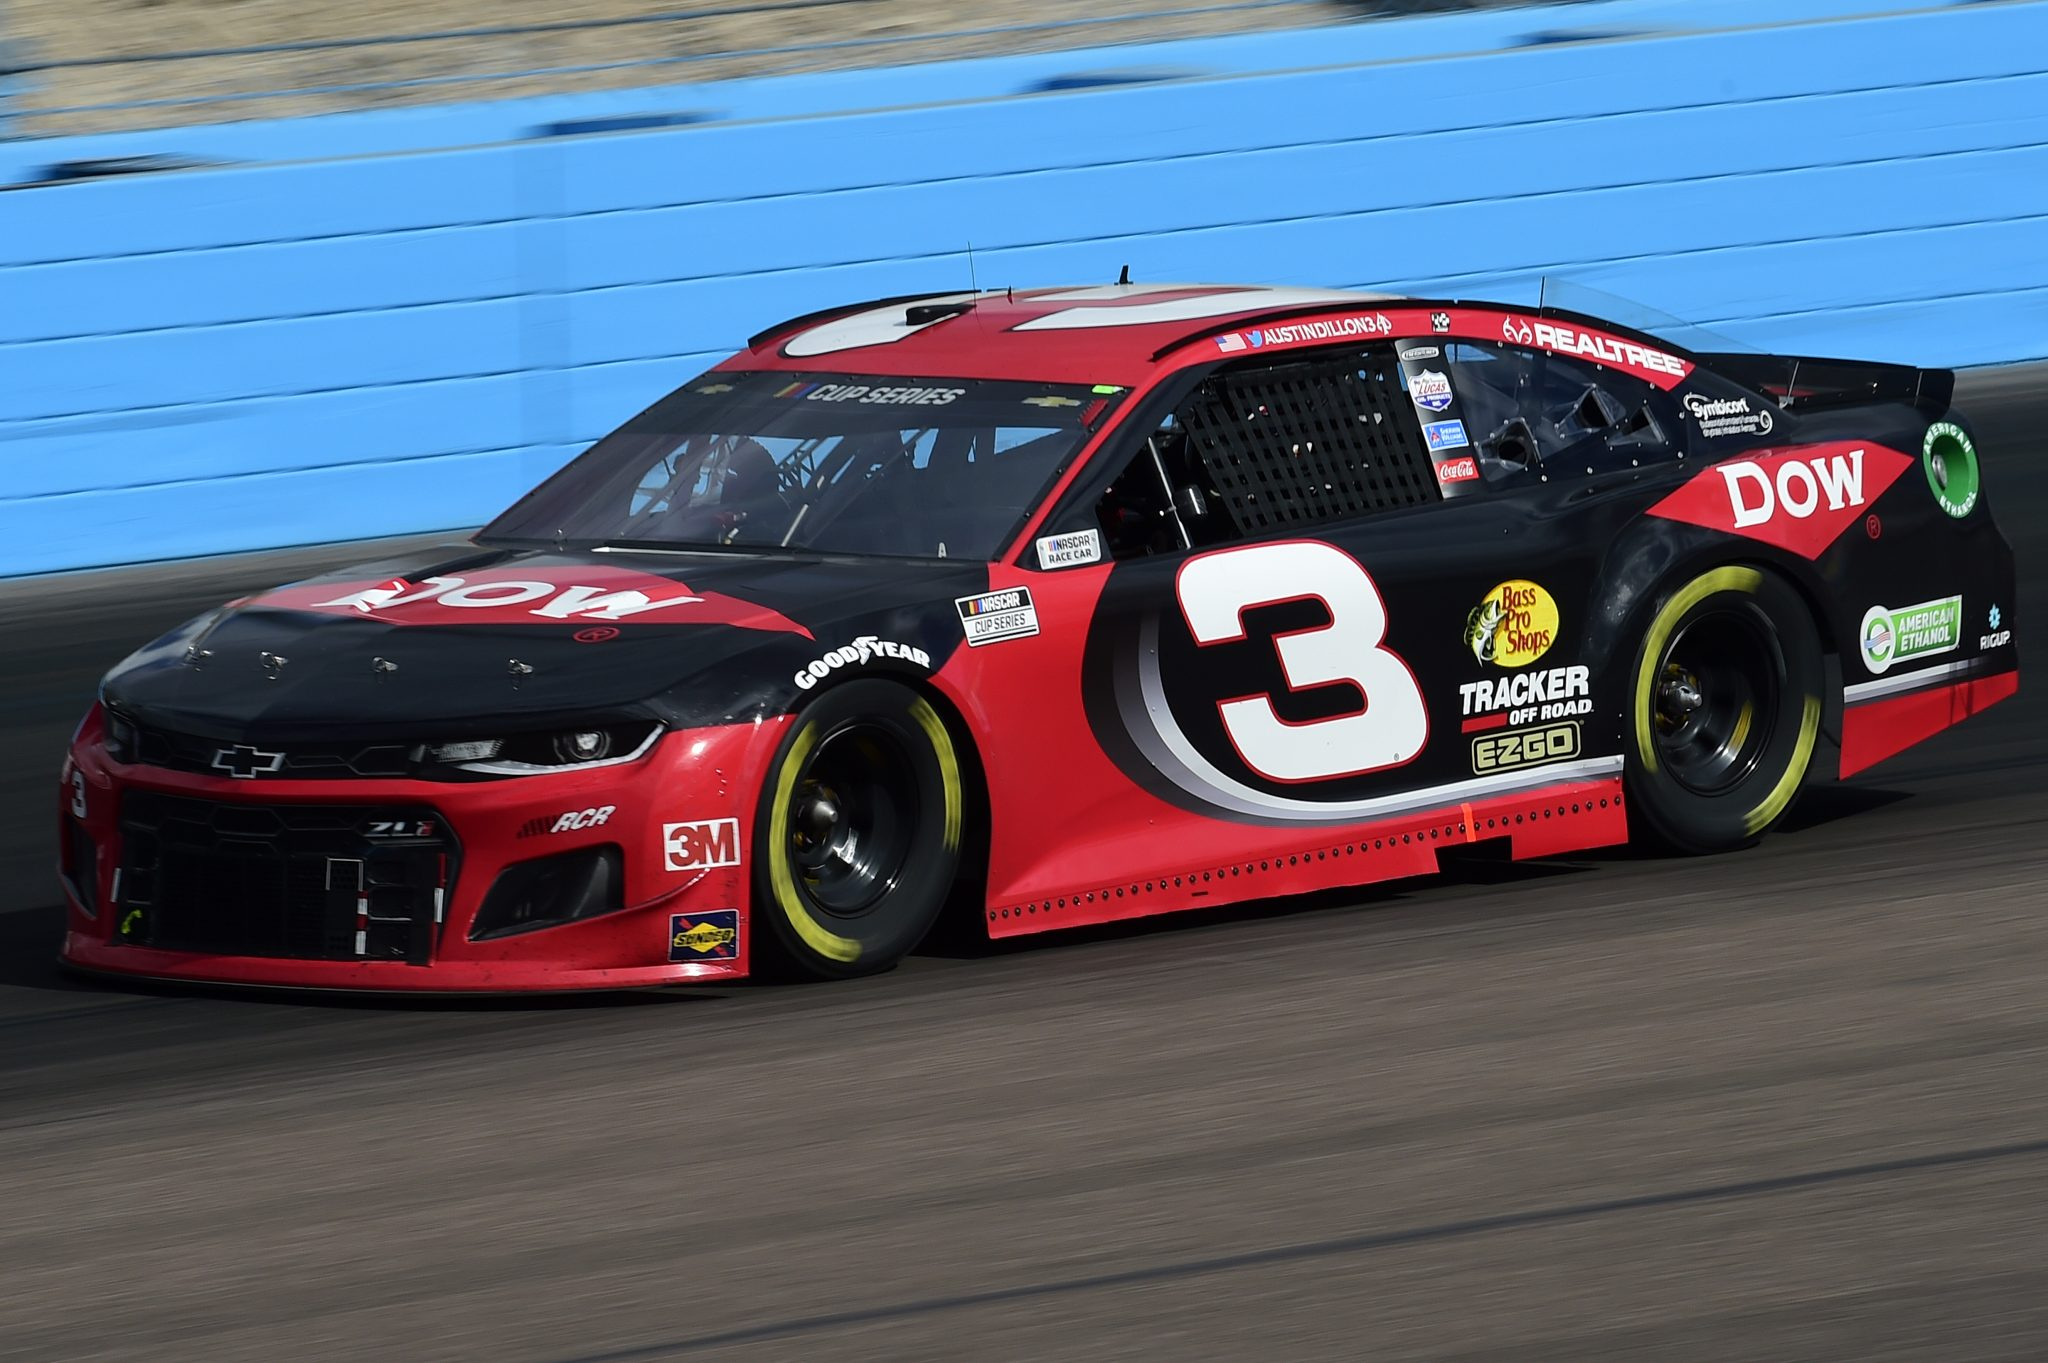 AVONDALE, ARIZONA - NOVEMBER 08: Austin Dillon, driver of the #3 DOW Chevrolet, drives during the NASCAR Cup Series Season Finale 500 at Phoenix Raceway on November 08, 2020 in Avondale, Arizona. (Photo by Jared C. Tilton/Getty Images) | Getty Images